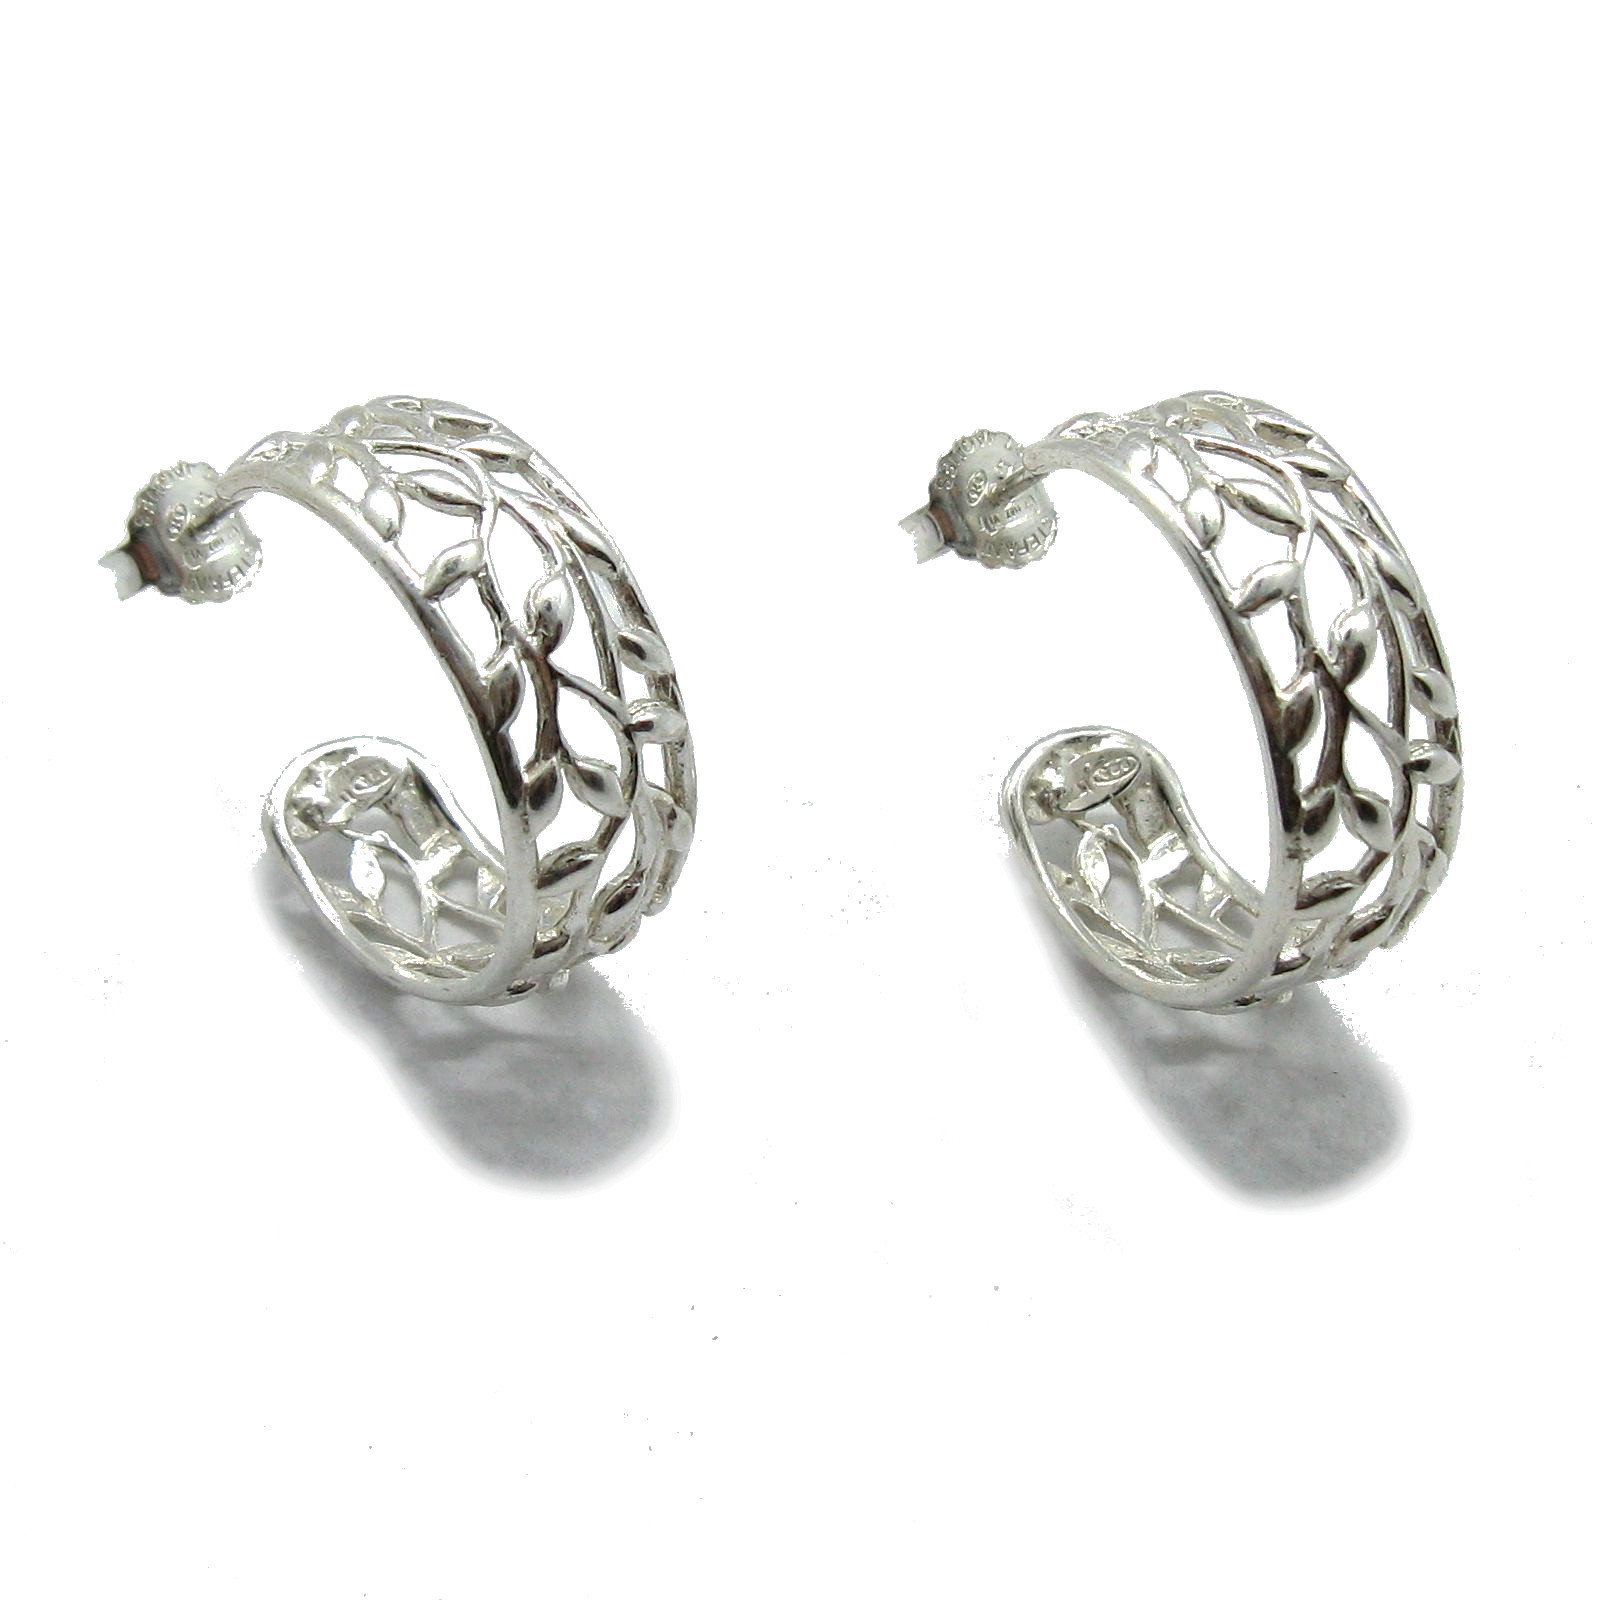 Silver earrings - E000730